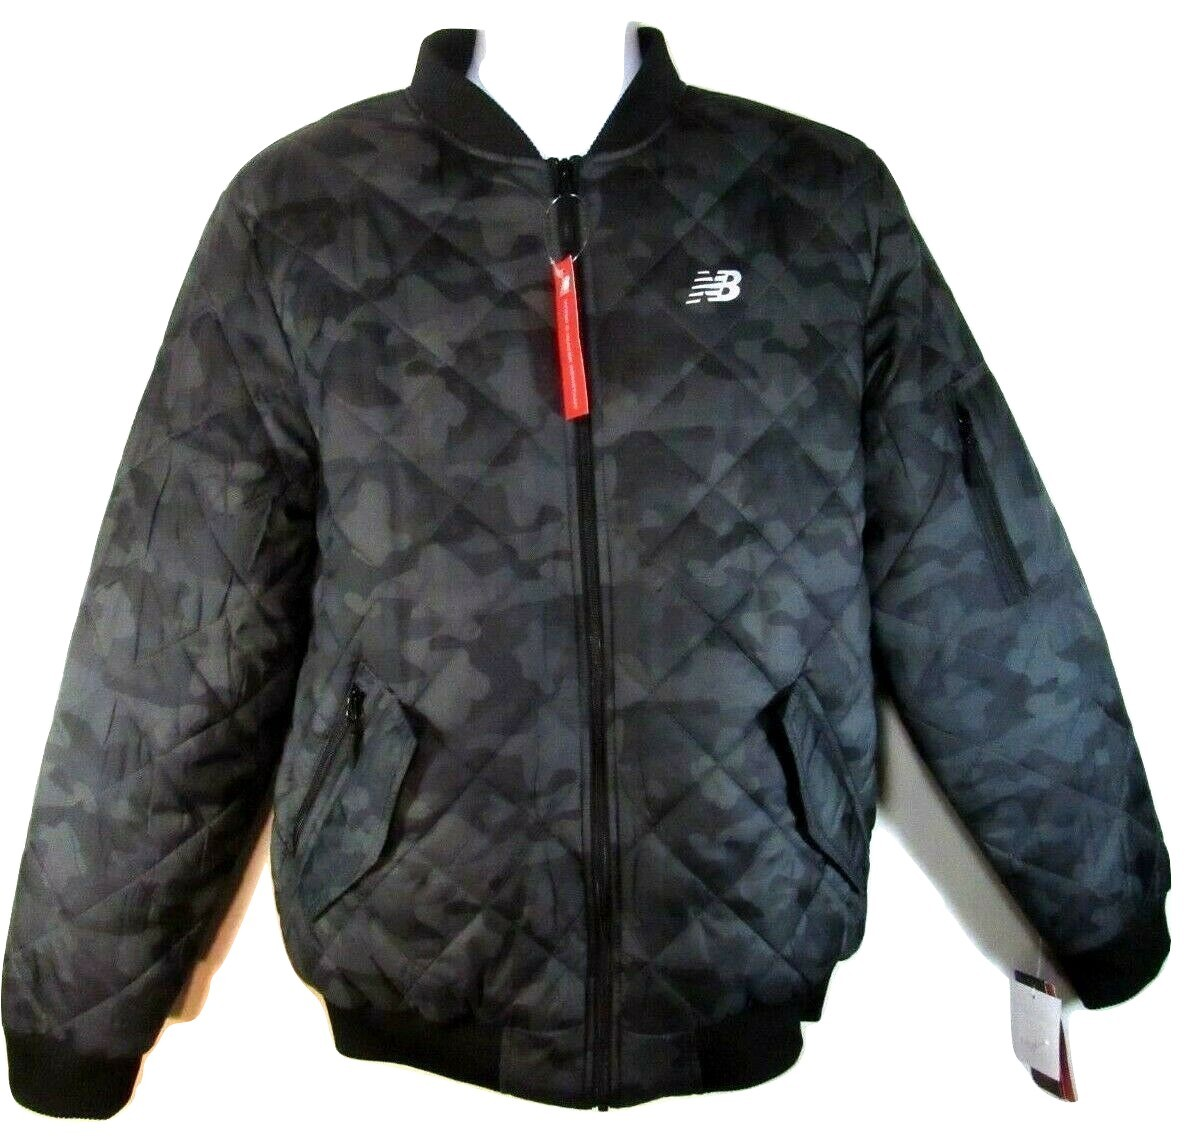 NEW BALANCE MEN'S BLACK PRINTED QUILTED BOMBER FULL ZIP JACKET, #NBMJ8231-OLC - $69.99